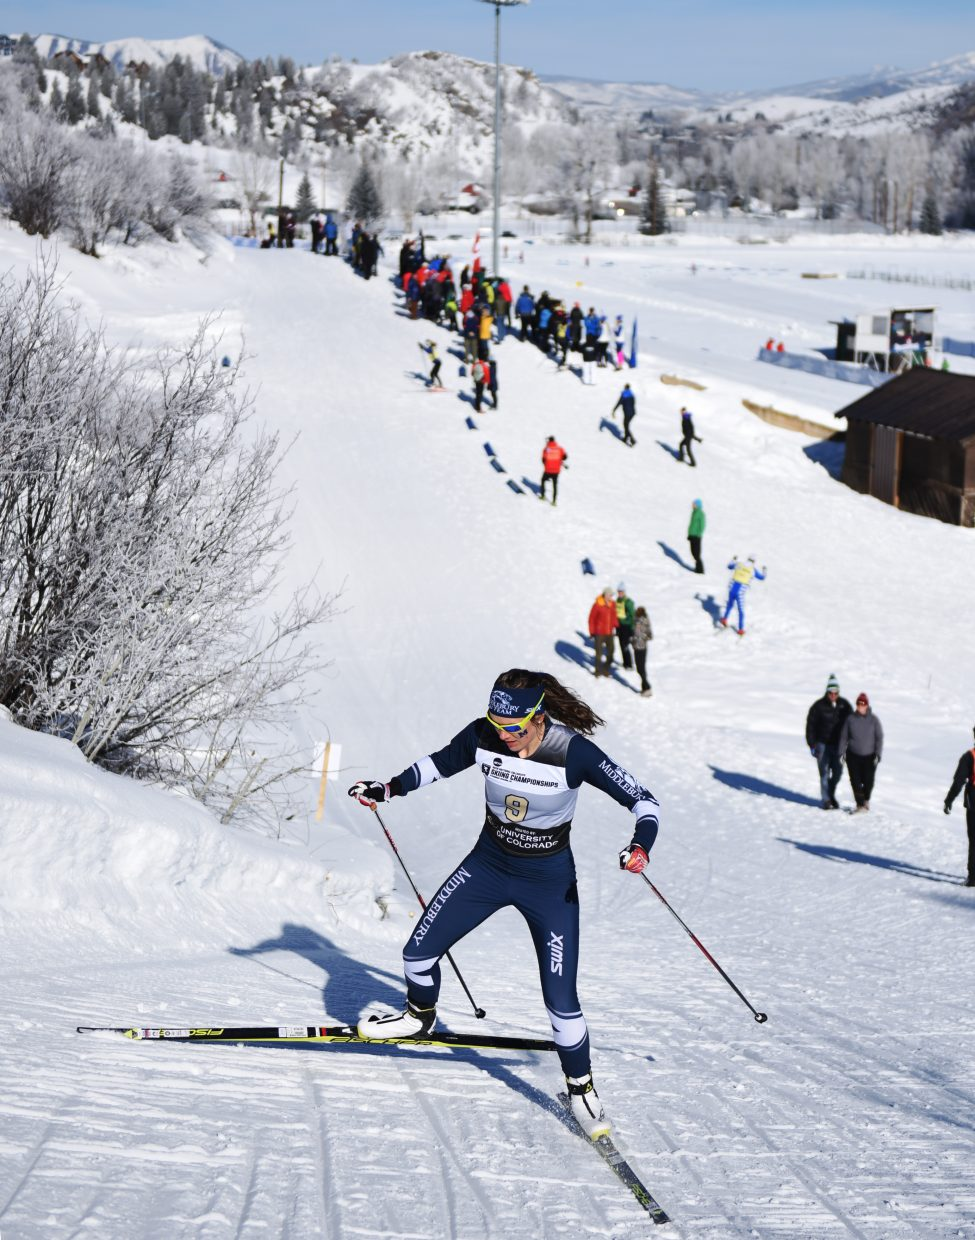 Middlebury skier Annie Pokorny skis up Emerald Mountain on Thursday during the NCAA Skiing Championships in Steamboat Springs.